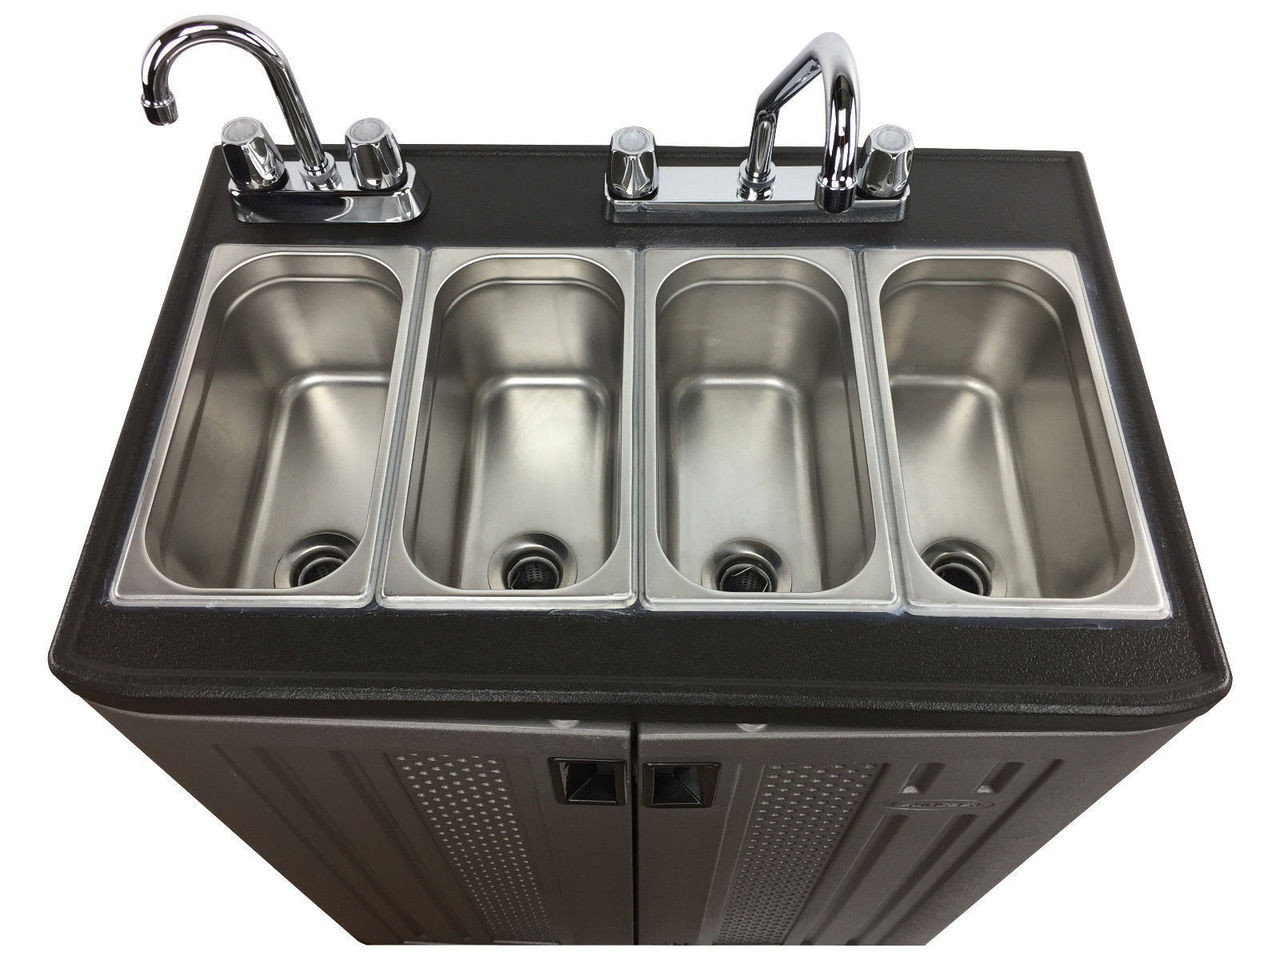 4 compartment concession sink front view